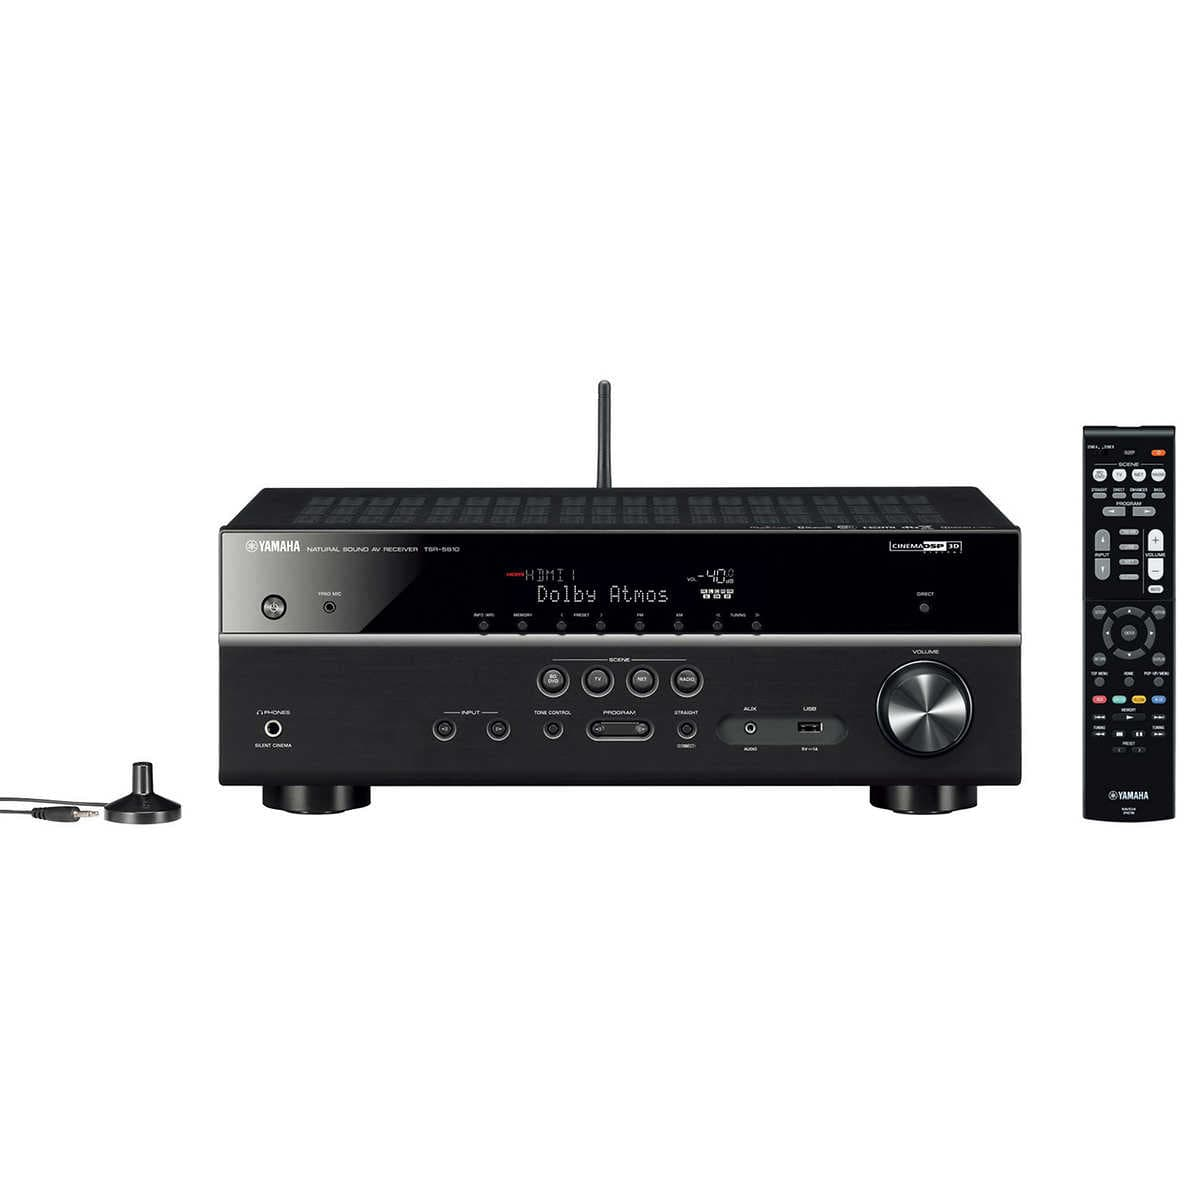 Yamaha TSR-5810 7.2-Channel Network AV Receiver 4K Ultra HD/HDR Pass-Through with HDCP 2.2, w/ Wi-Fi and Bluetooth $339.99 + Free Shipping @ Costco Online